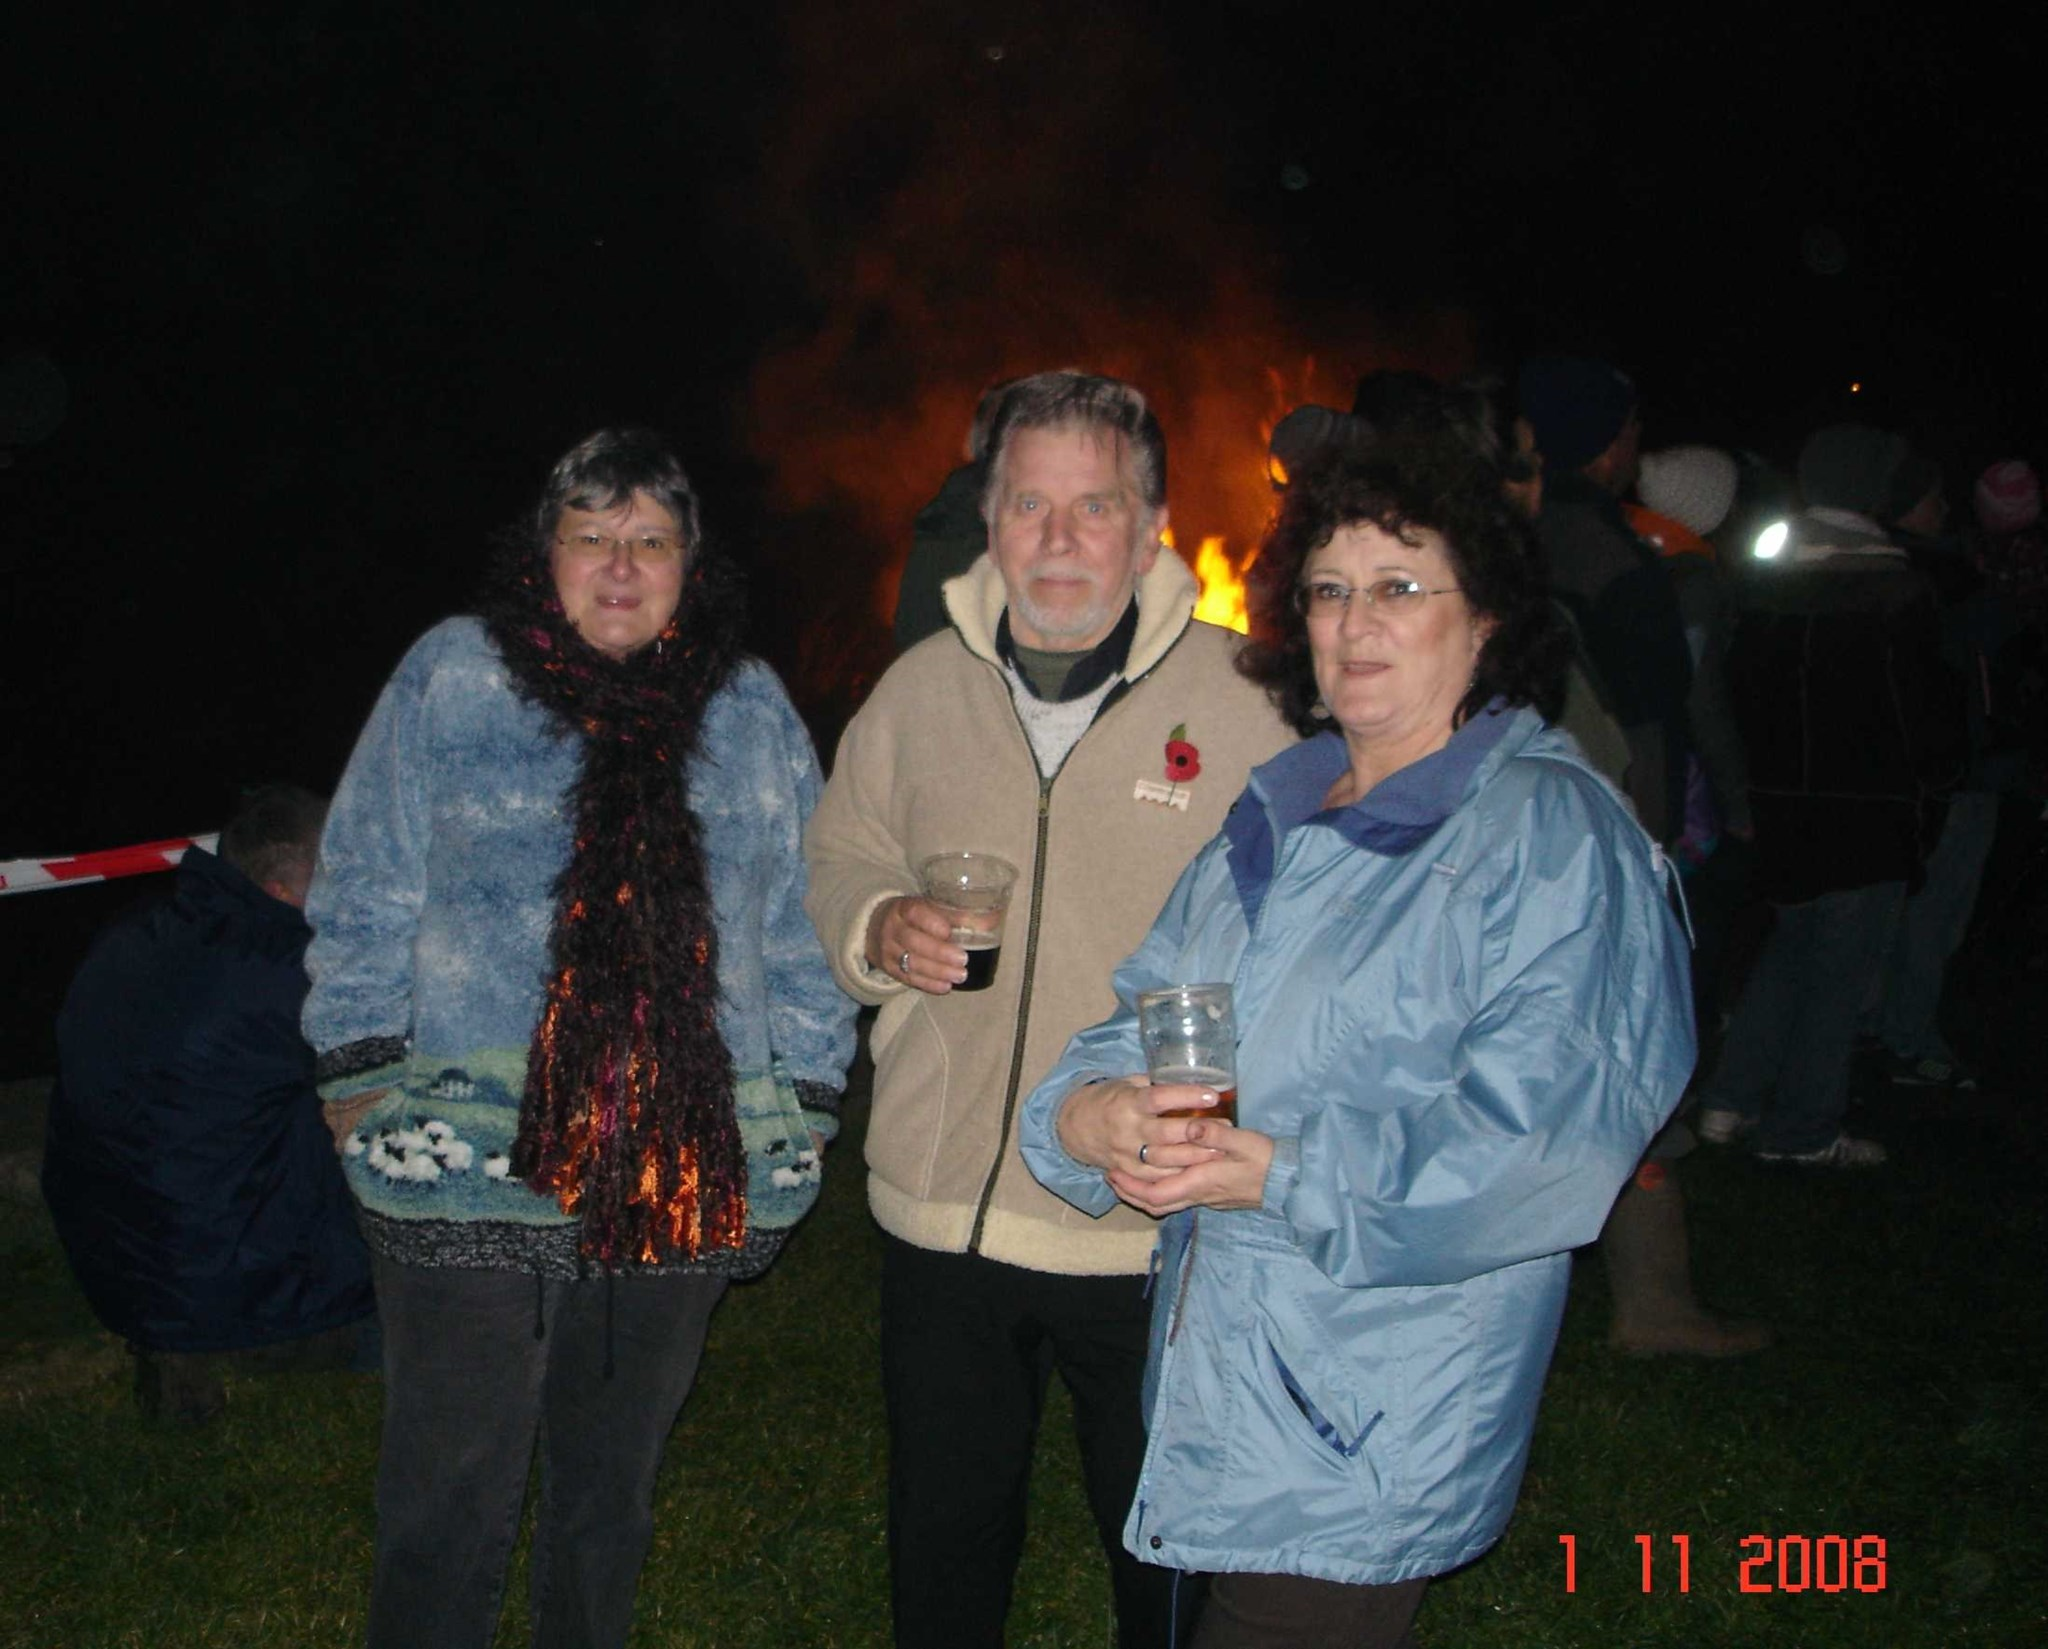 Bonfire night 2008